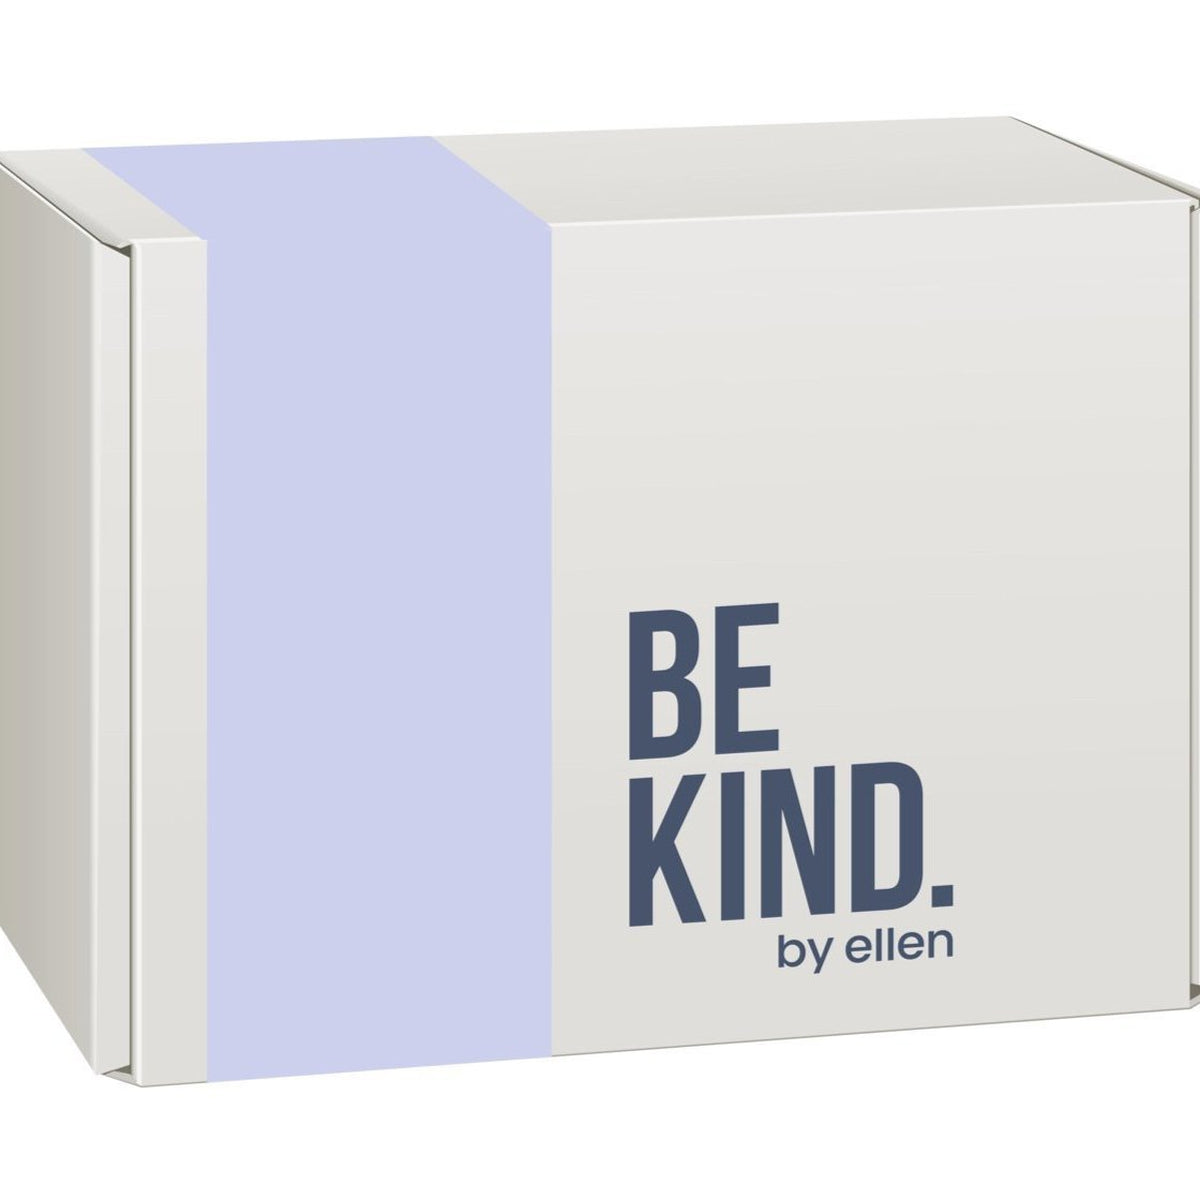 BE KIND. by ellen subscription box